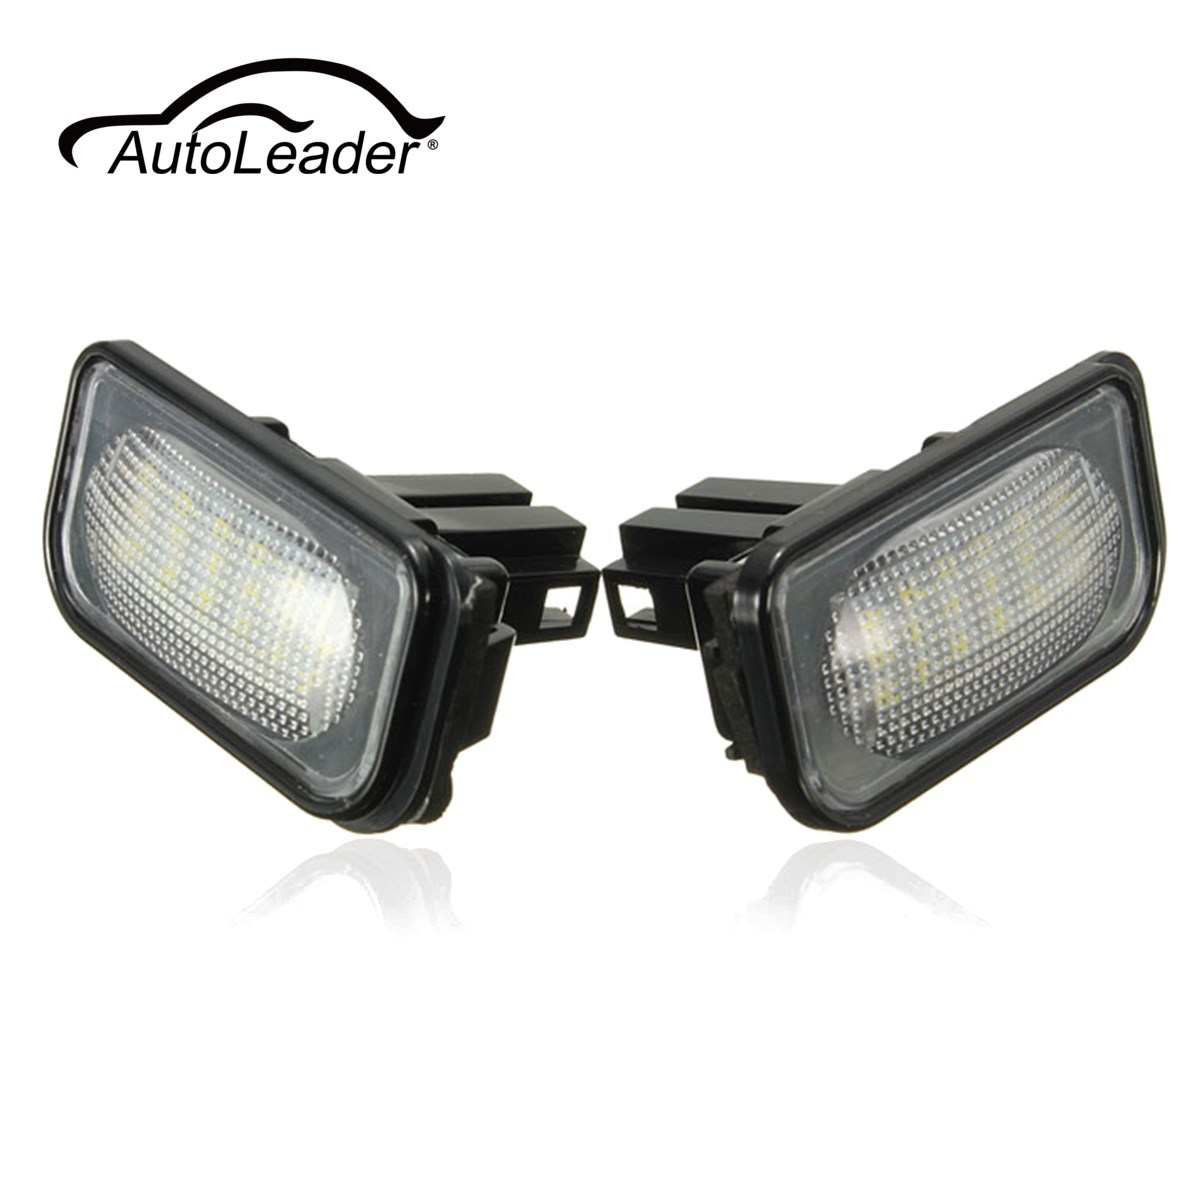 AutoLeader 18LED 3528 SMD License Plate Light For Benz  2001-2007 4 Doors Wagon C Class W203 4D Sedan CLS-Class W219 E-Class motorcycle tail tidy fender eliminator registration license plate holder bracket led light for ducati panigale 899 free shipping